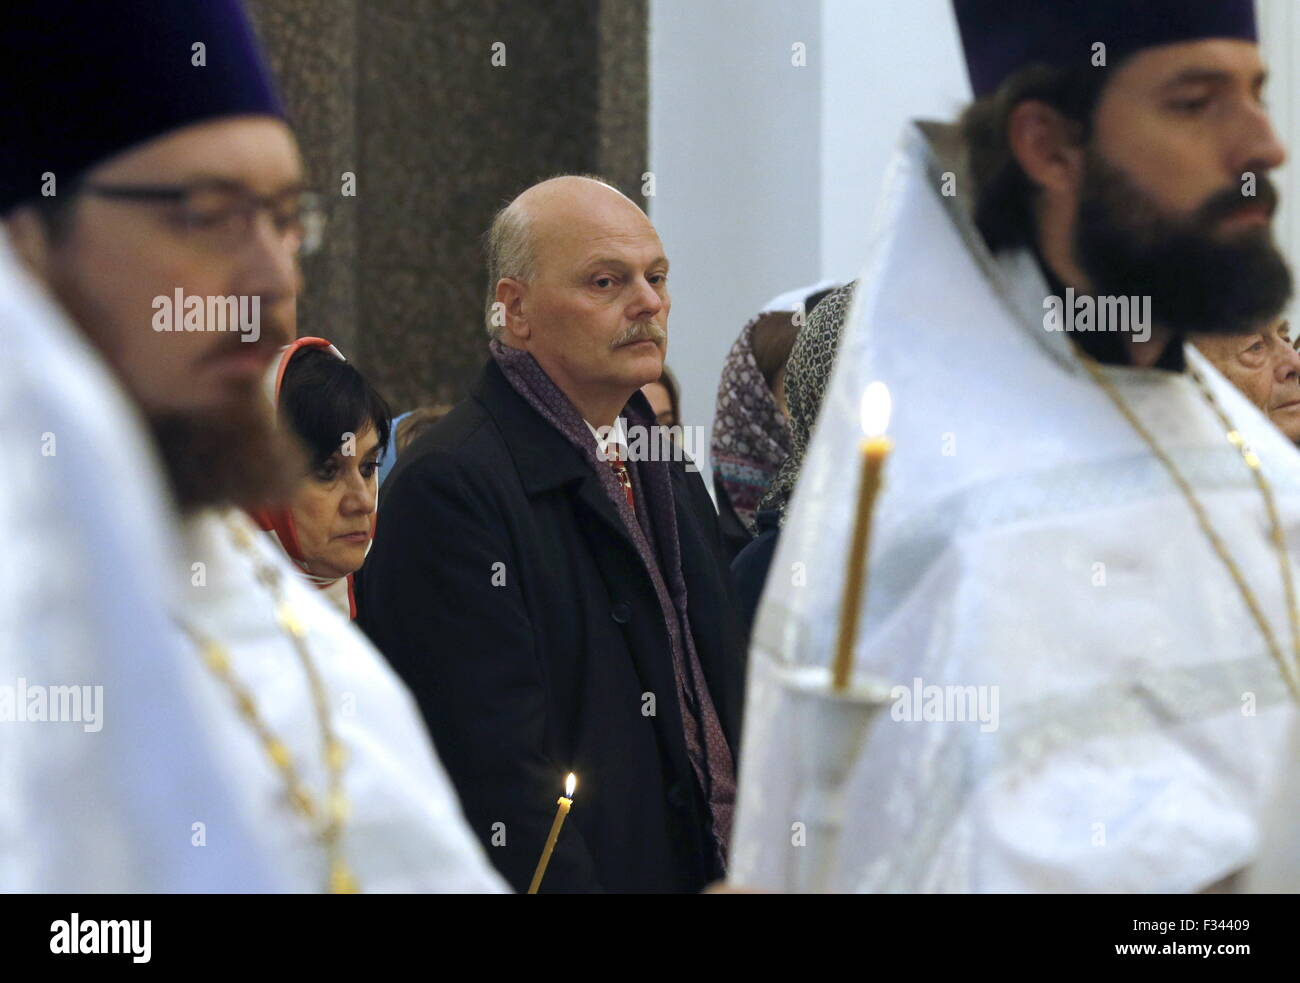 St. Petersburg, Russia. 29th Sep, 2015. Pavel Kulikovsky-Romanov (C background), great-great-grandson of former - Stock Image